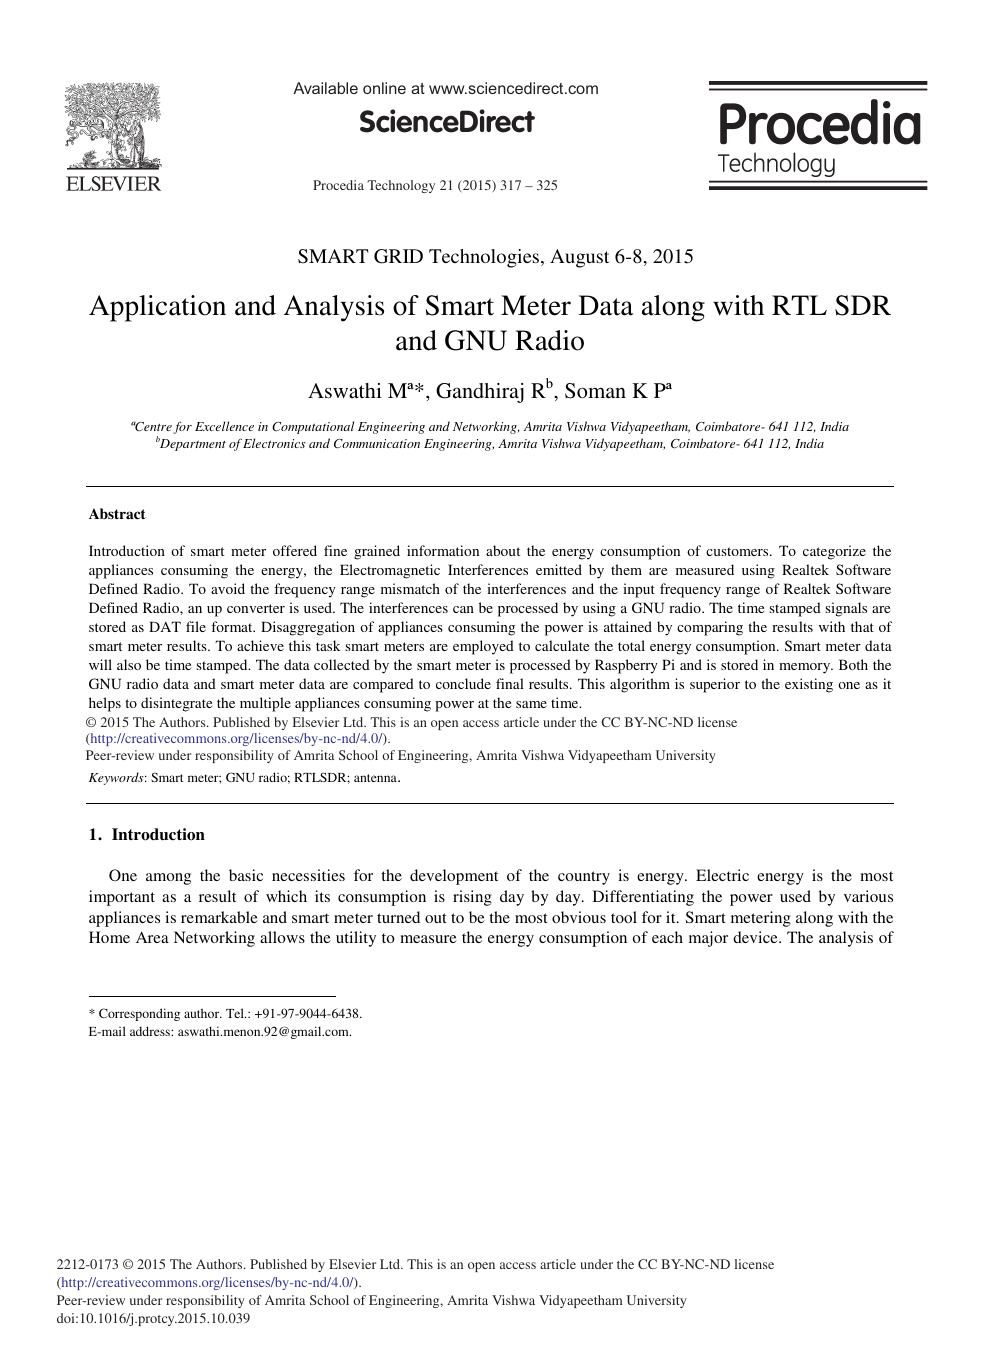 Application and Analysis of Smart Meter Data along with RTL